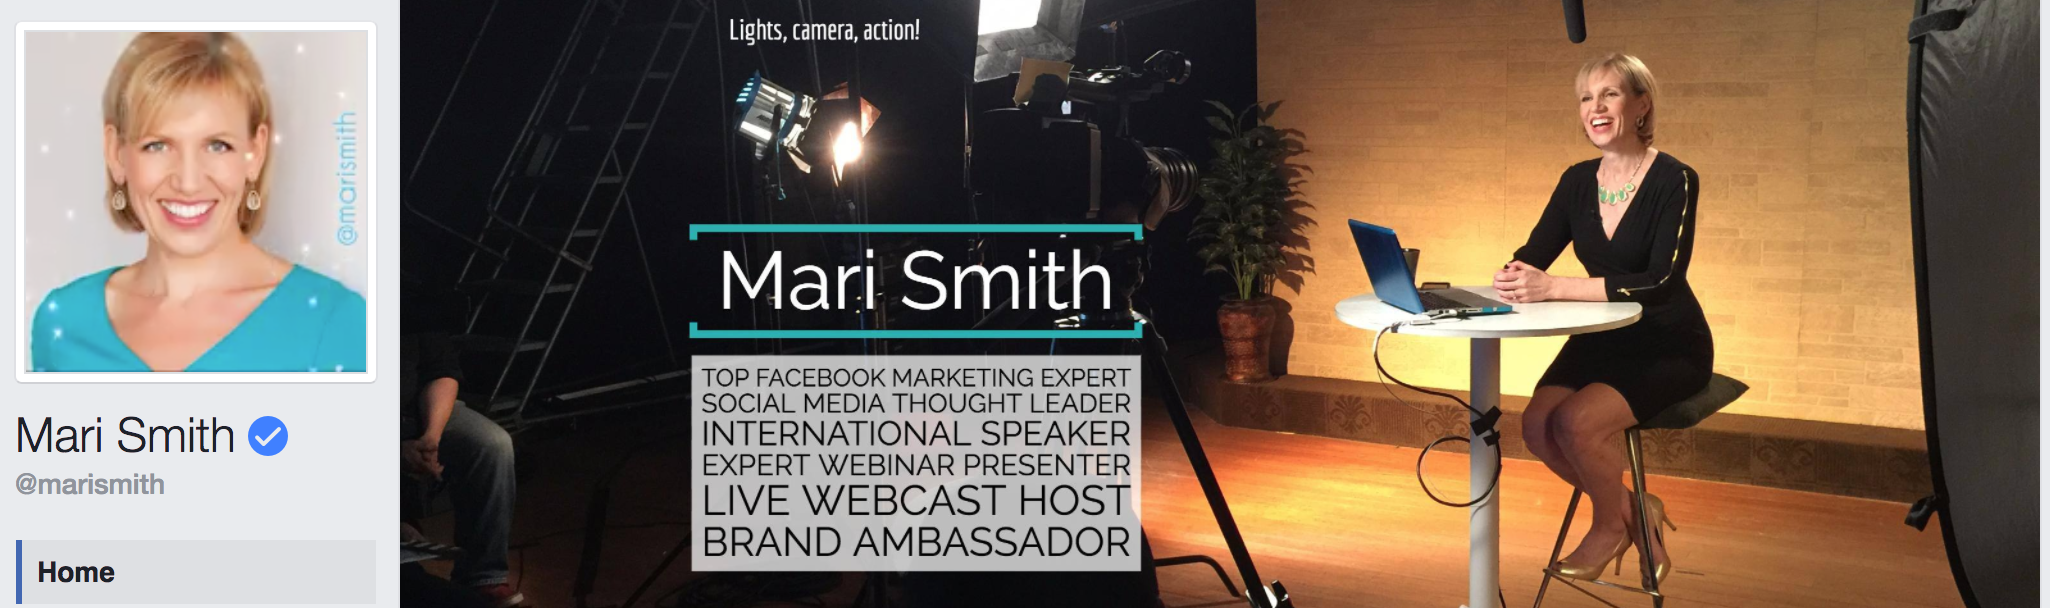 42 Content & Social Media Influencers - Mari Smith